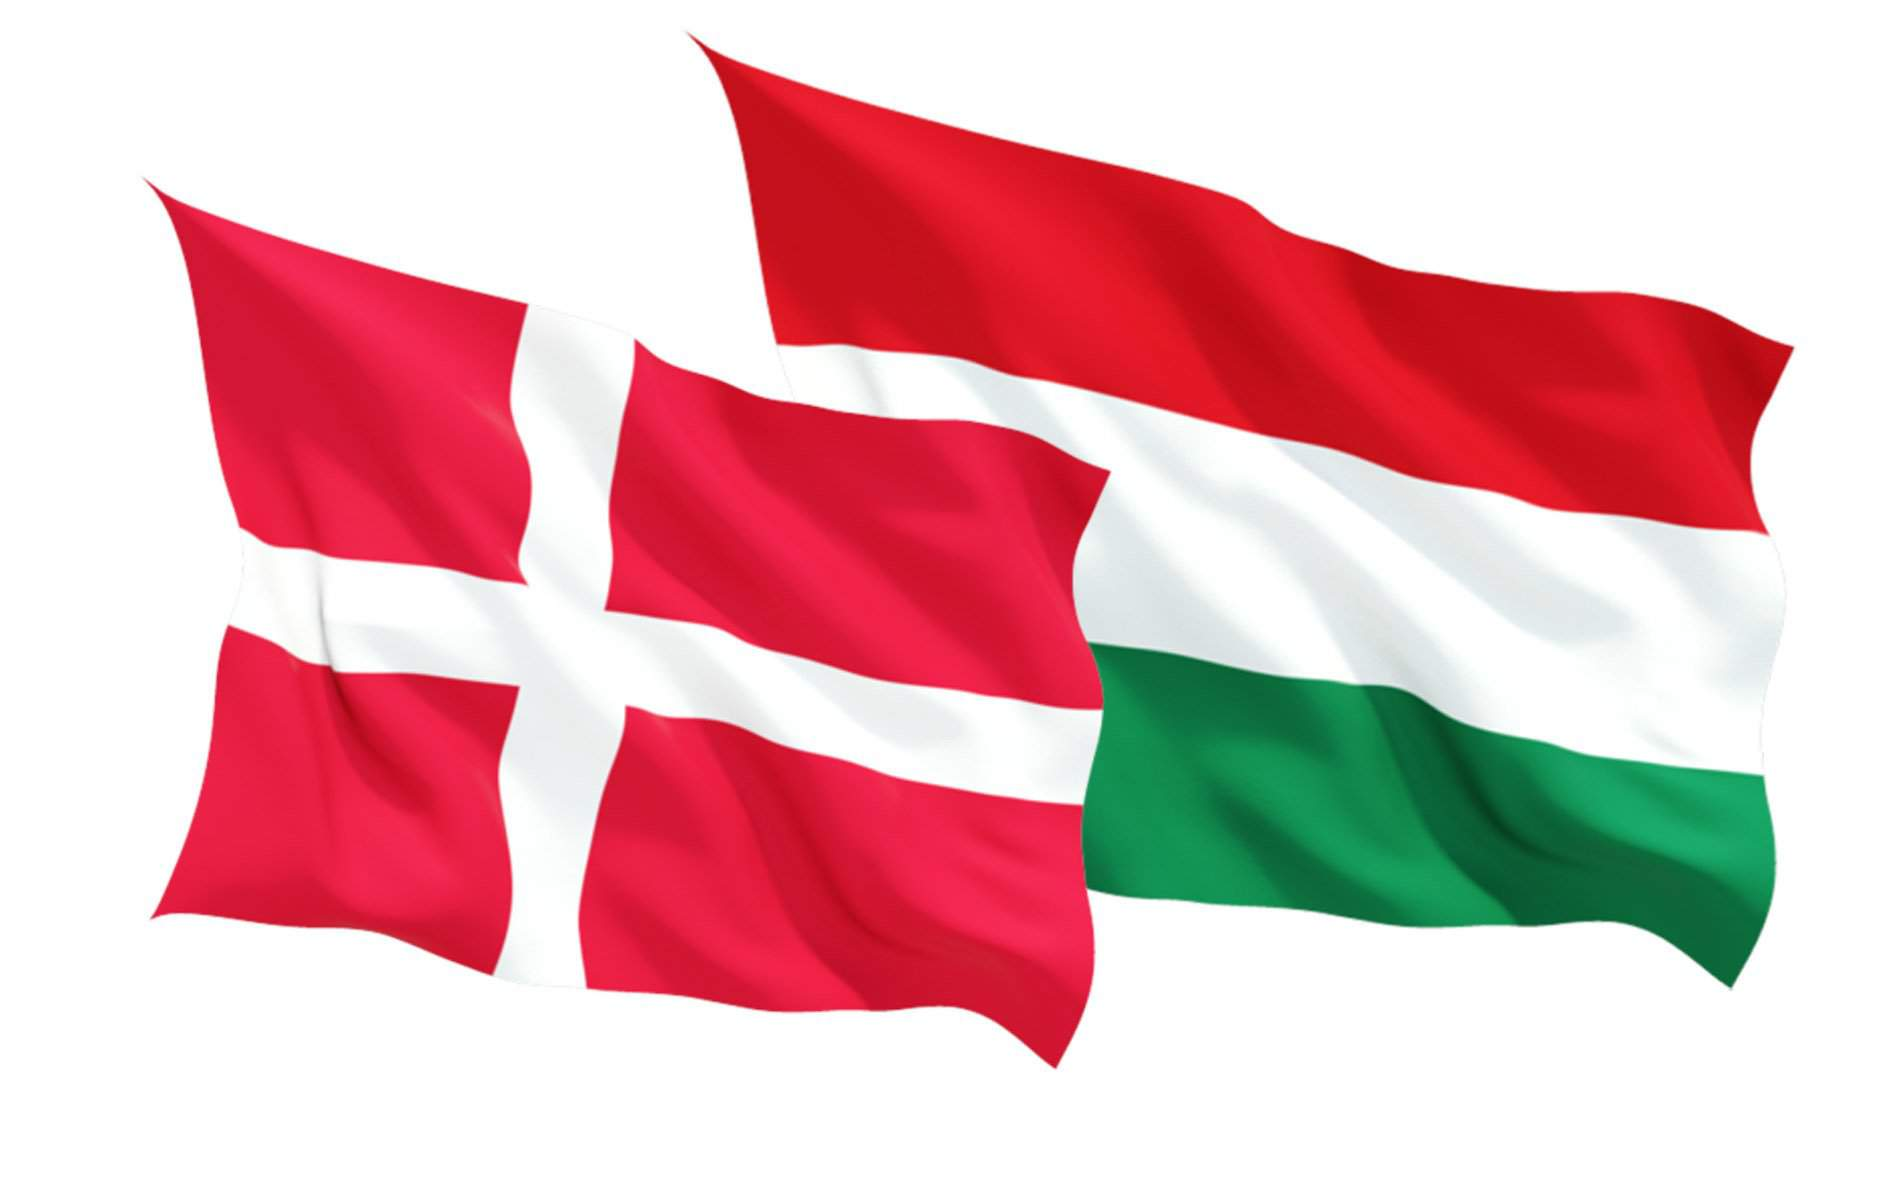 Both Hungary and Denmark strive to stabilise results achieved in European Union